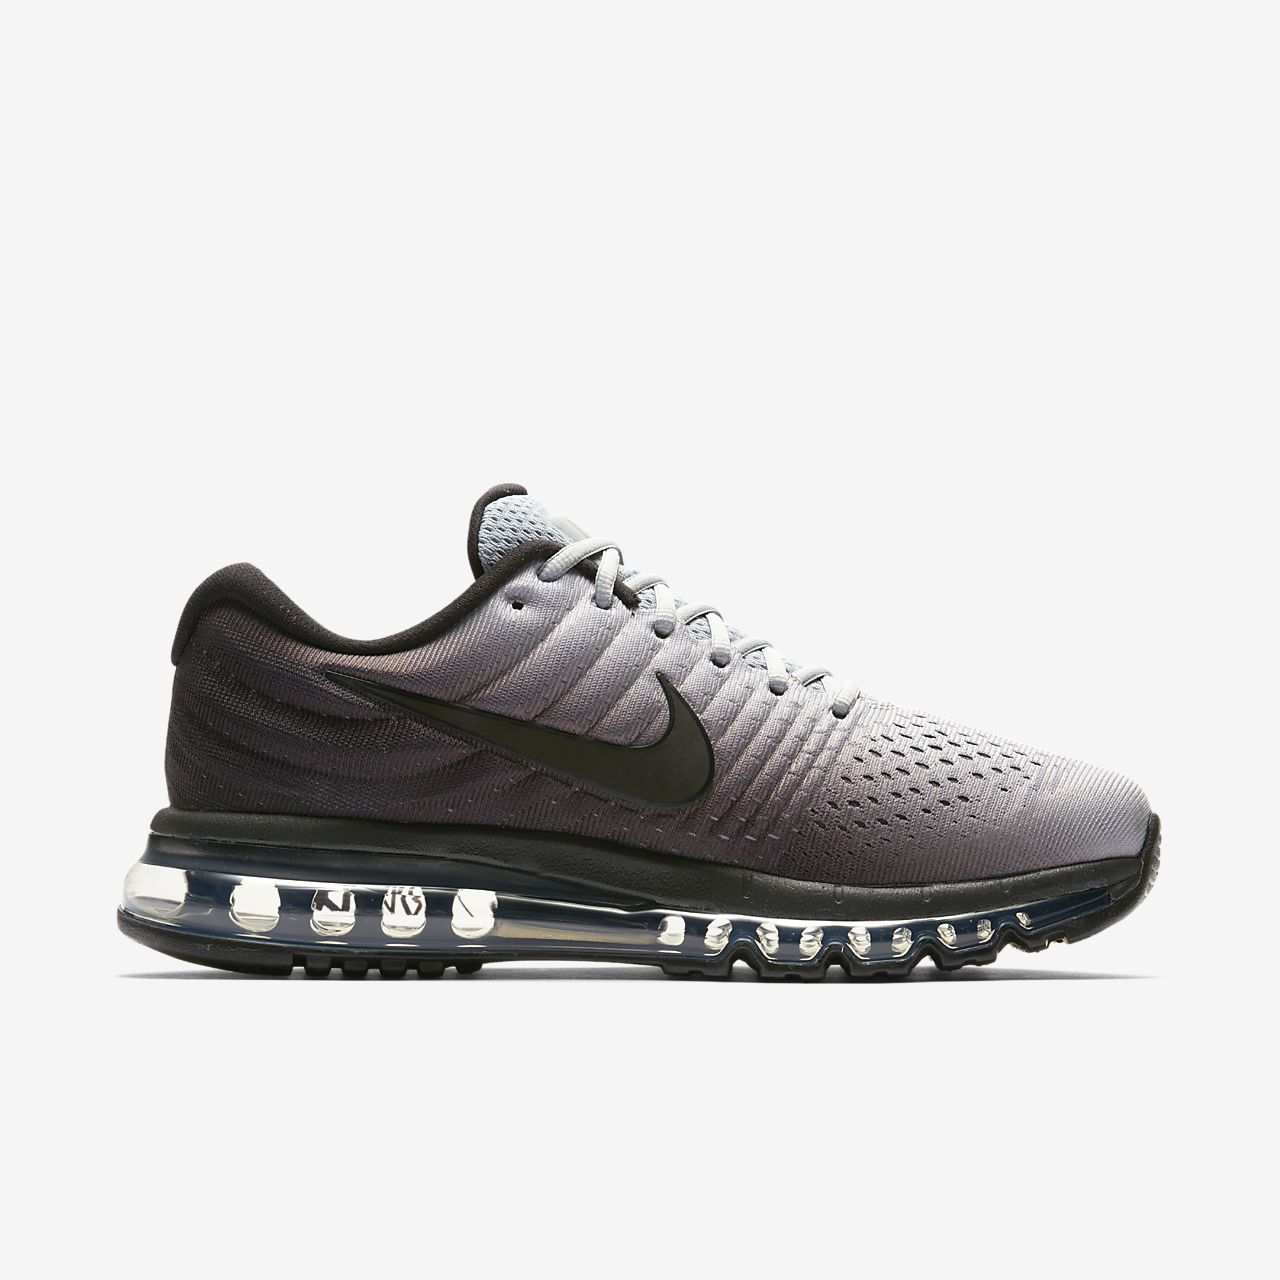 separation shoes 7bf0a f55a9 ... Nike Air Max 2017 Men s Running Shoe